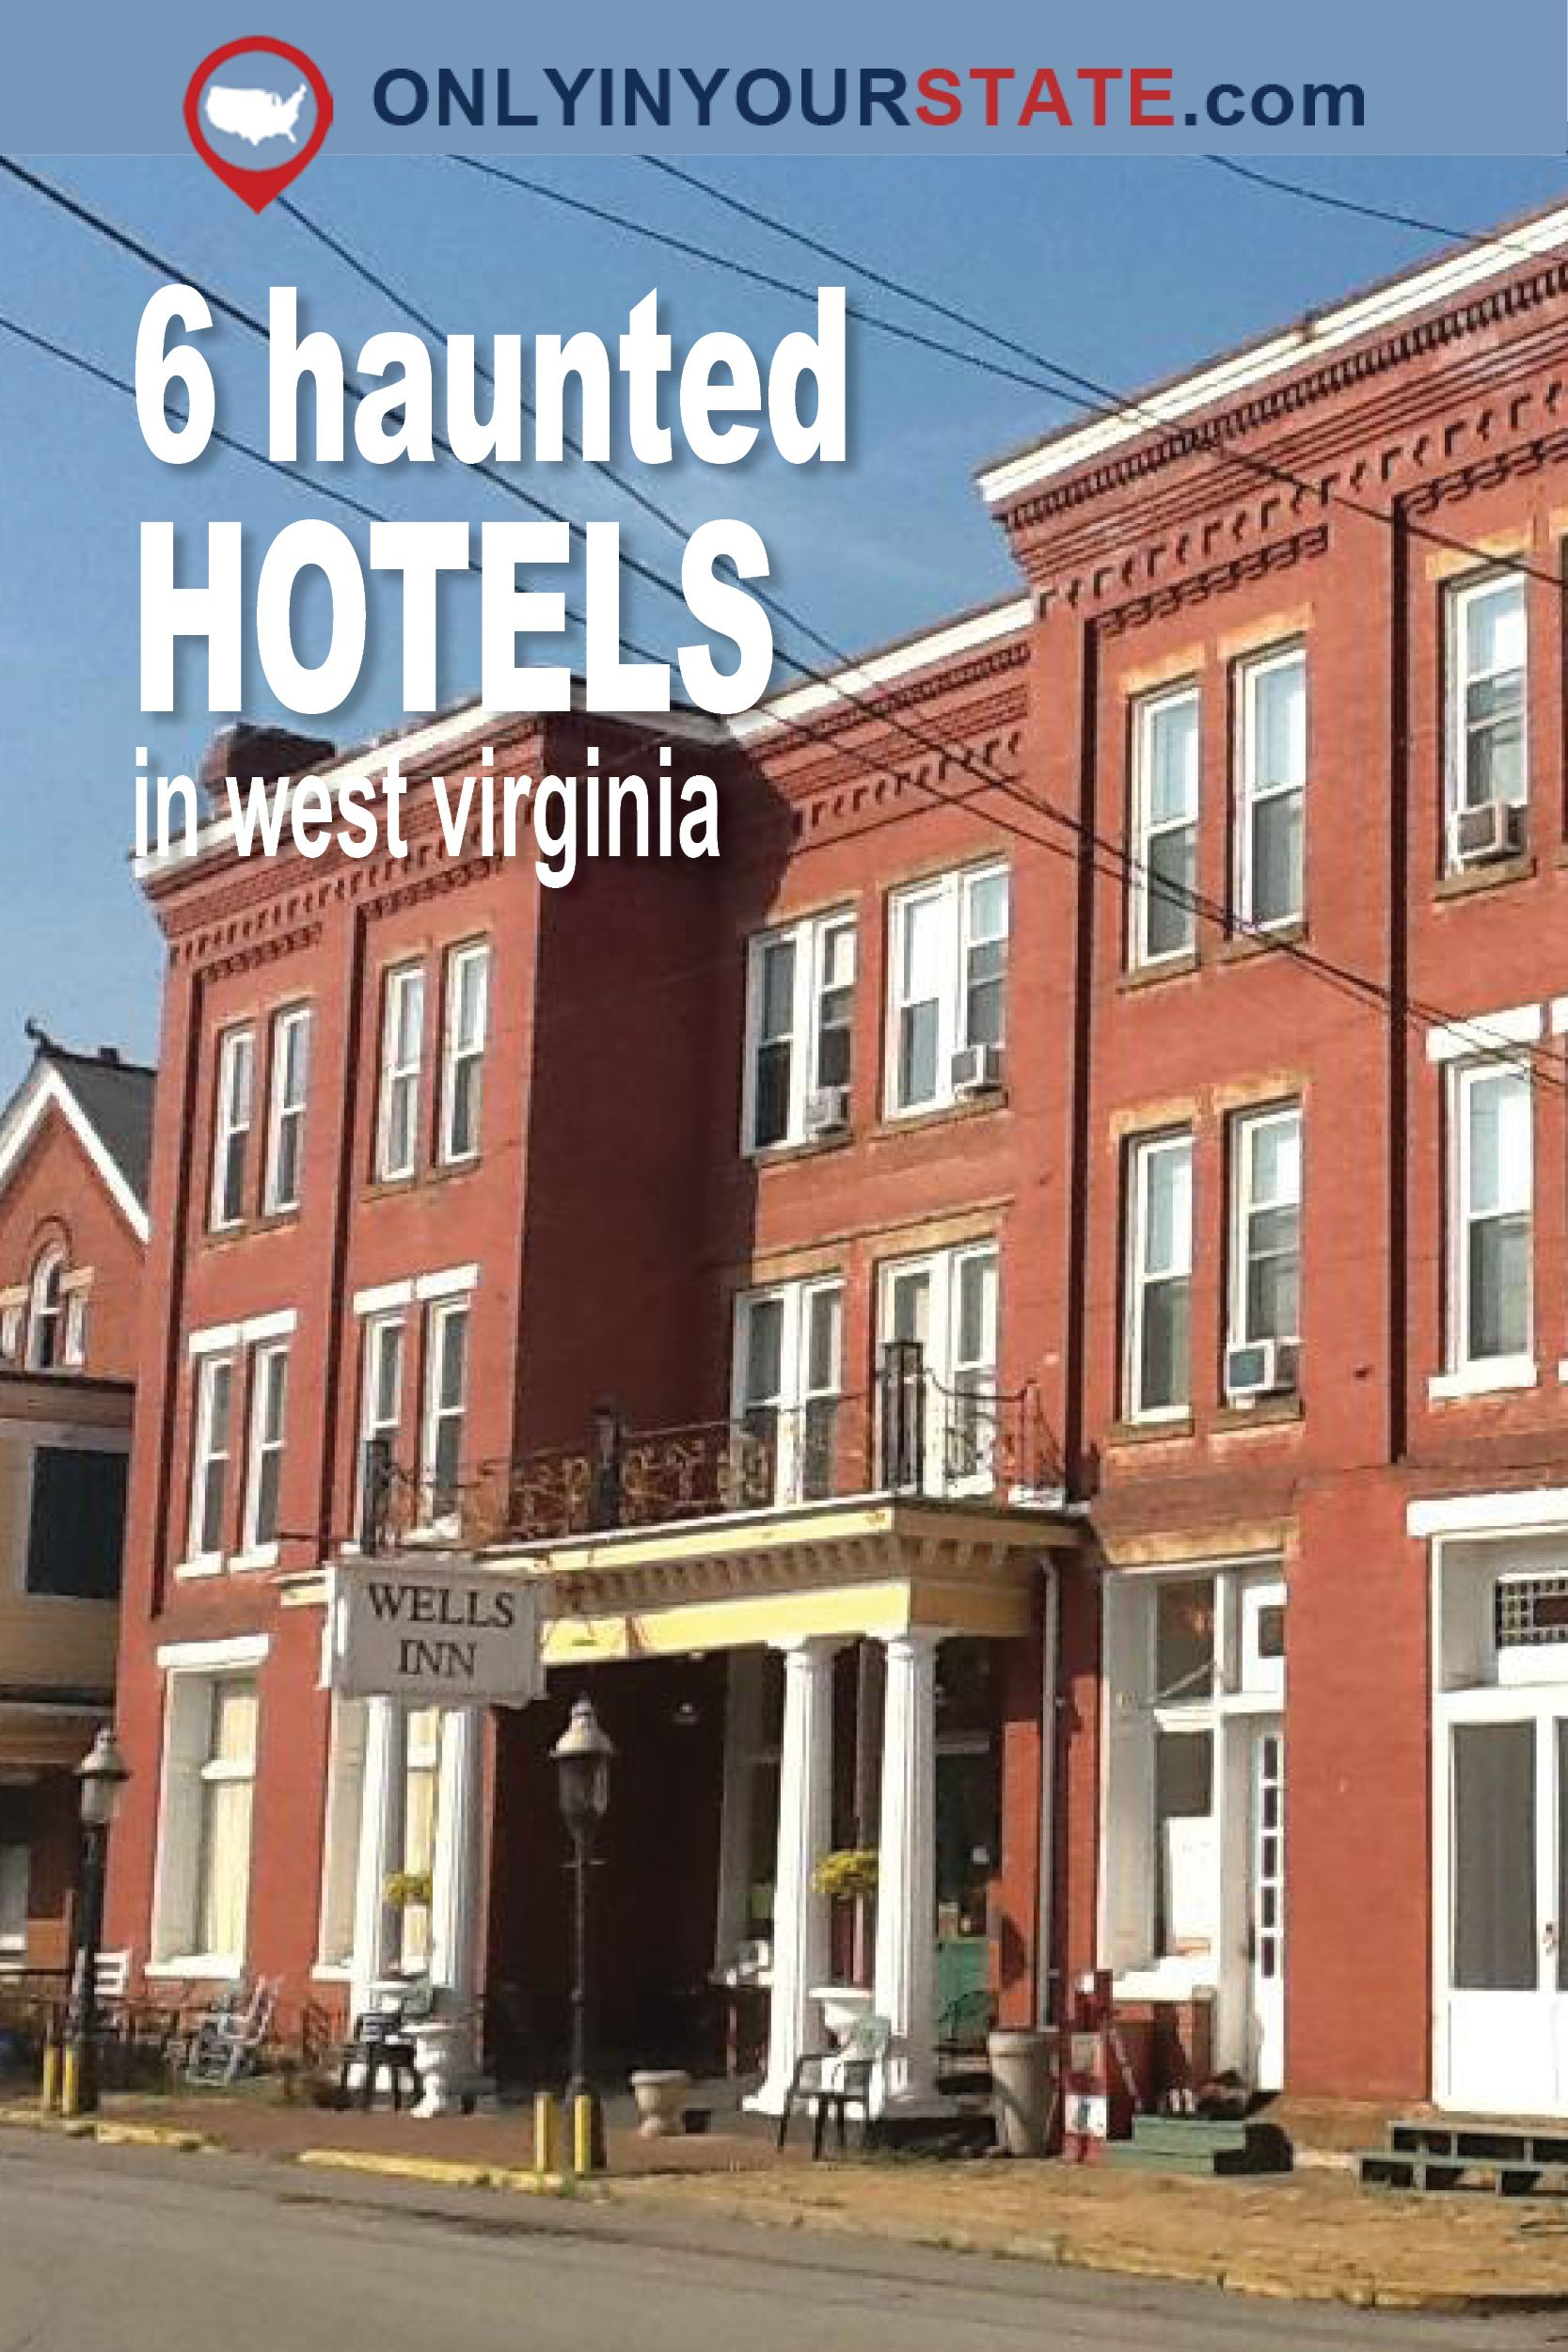 These 6 Haunted Hotels In West Virginia Will Make Your Stay A Nightmare